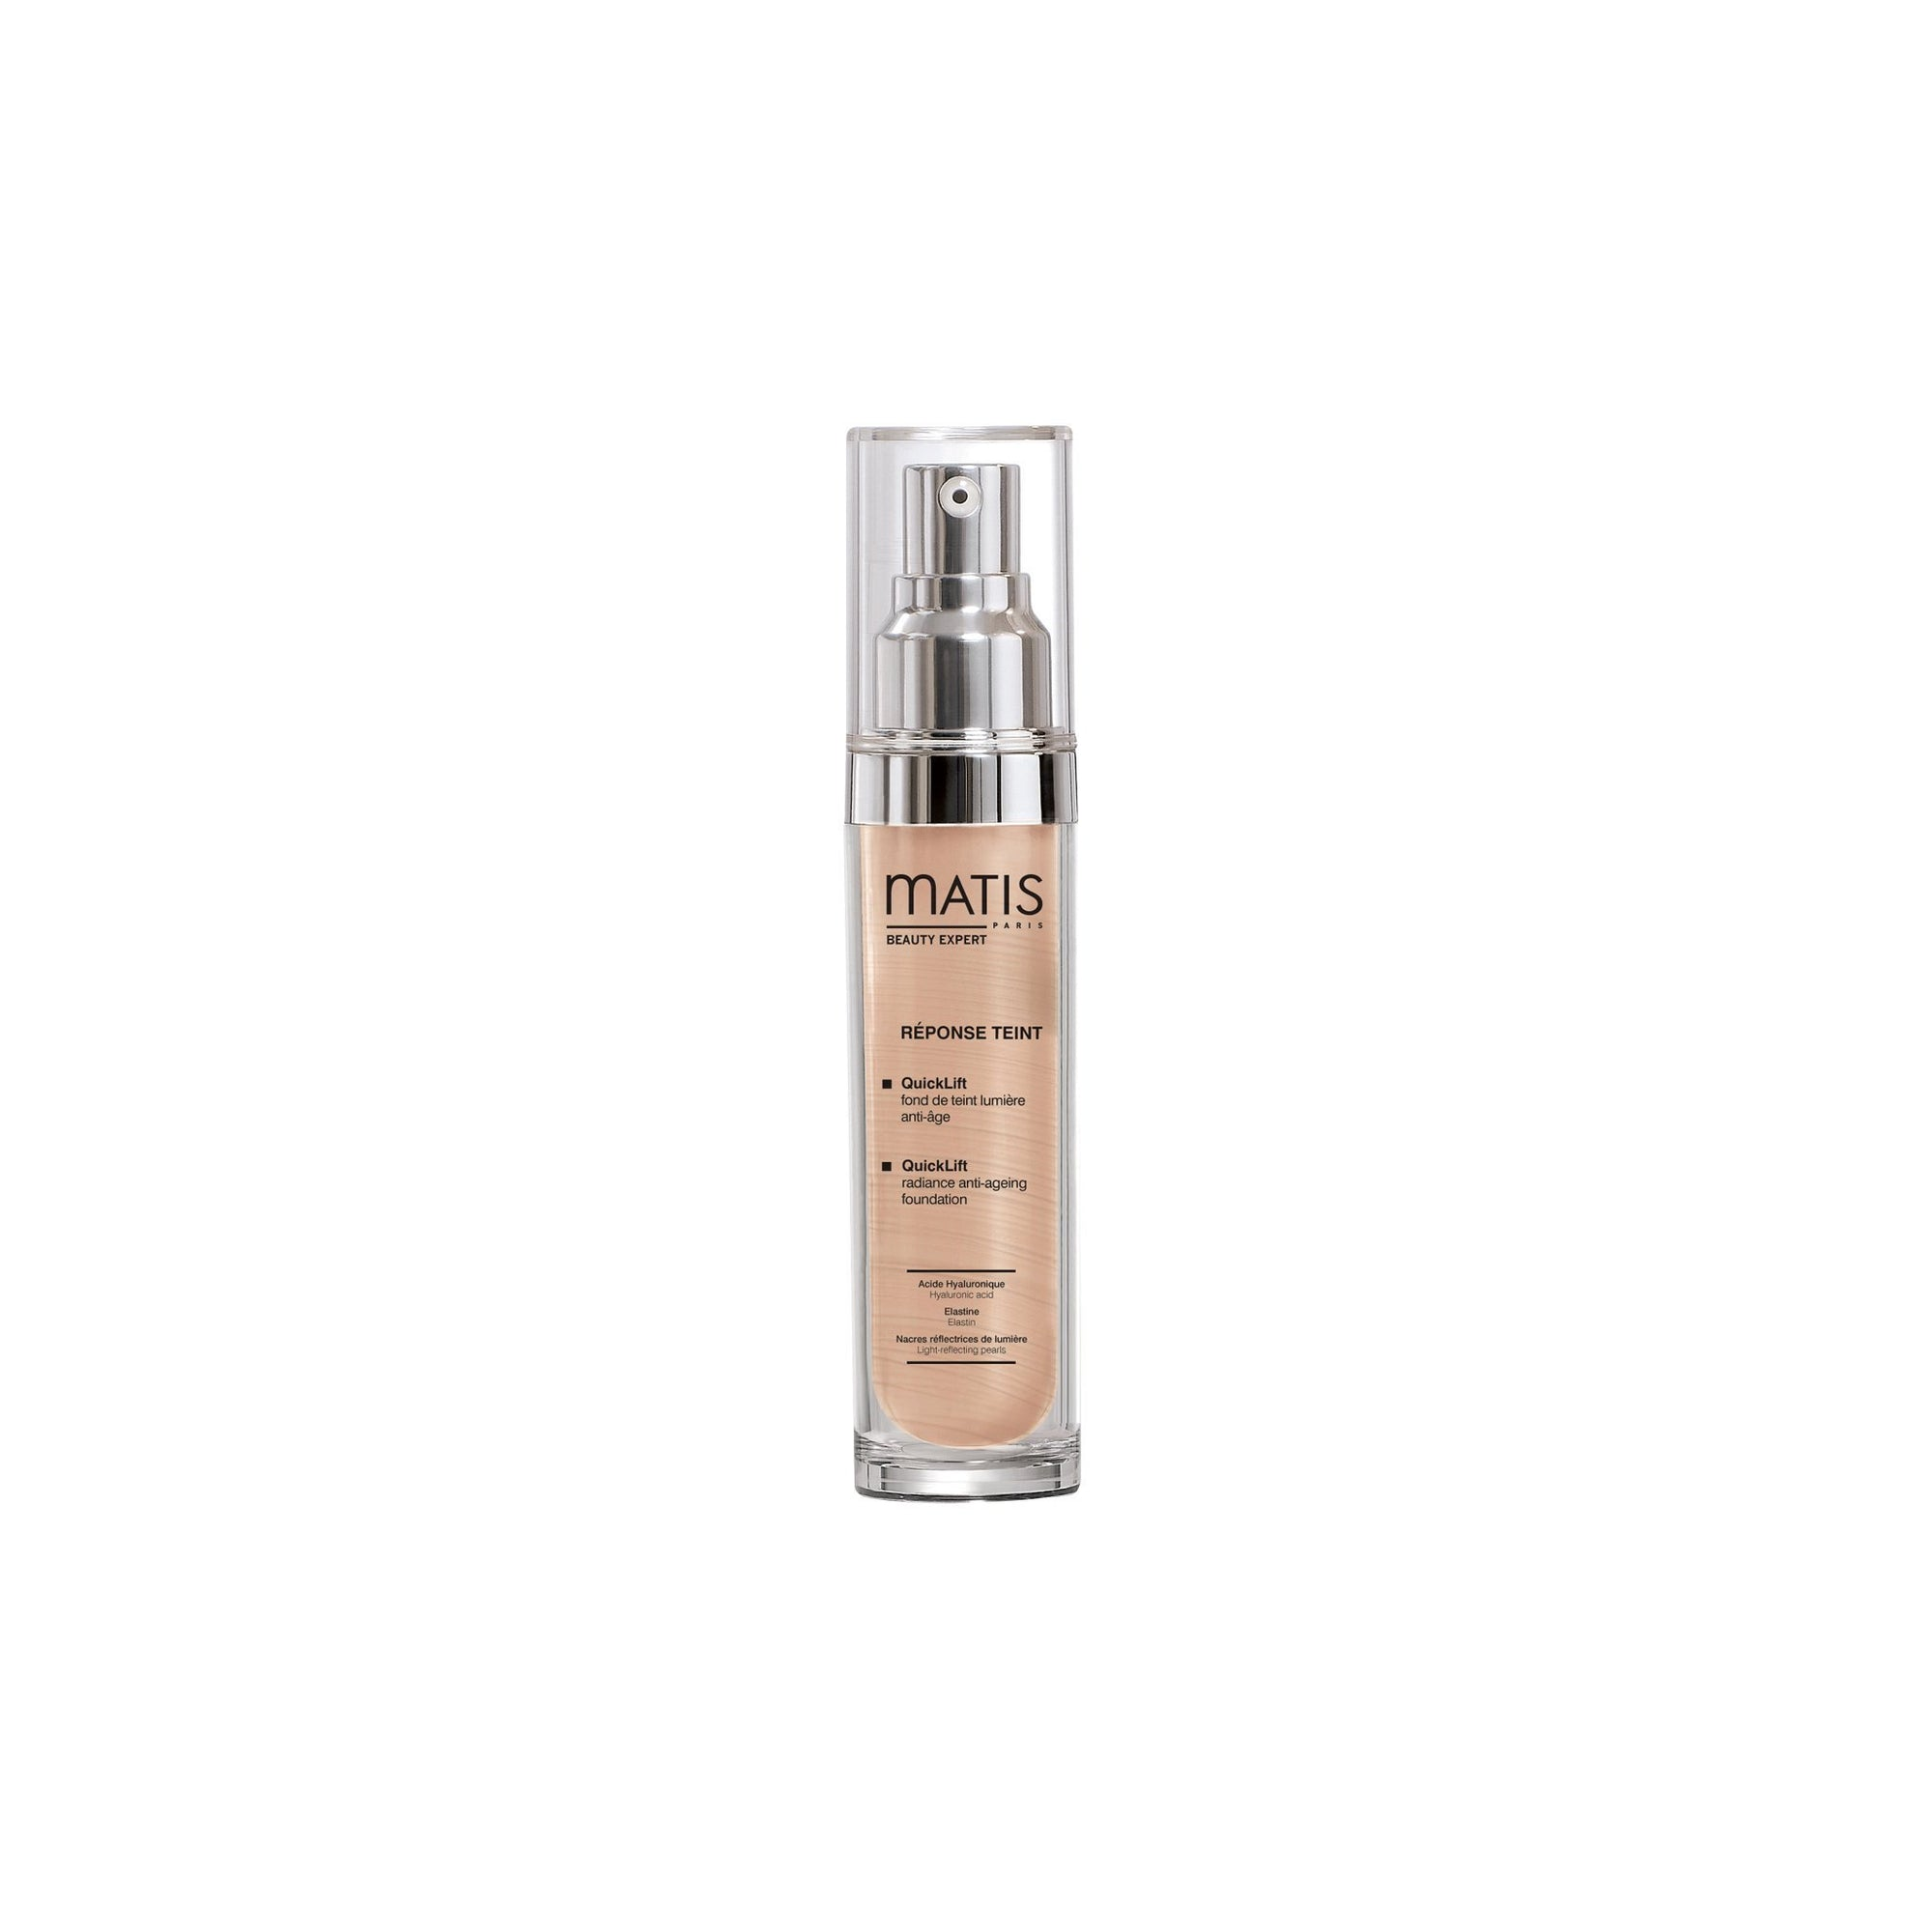 Matis Le Teint Quicklift Anti-Ageing Foundation - Medium Beige 30ml